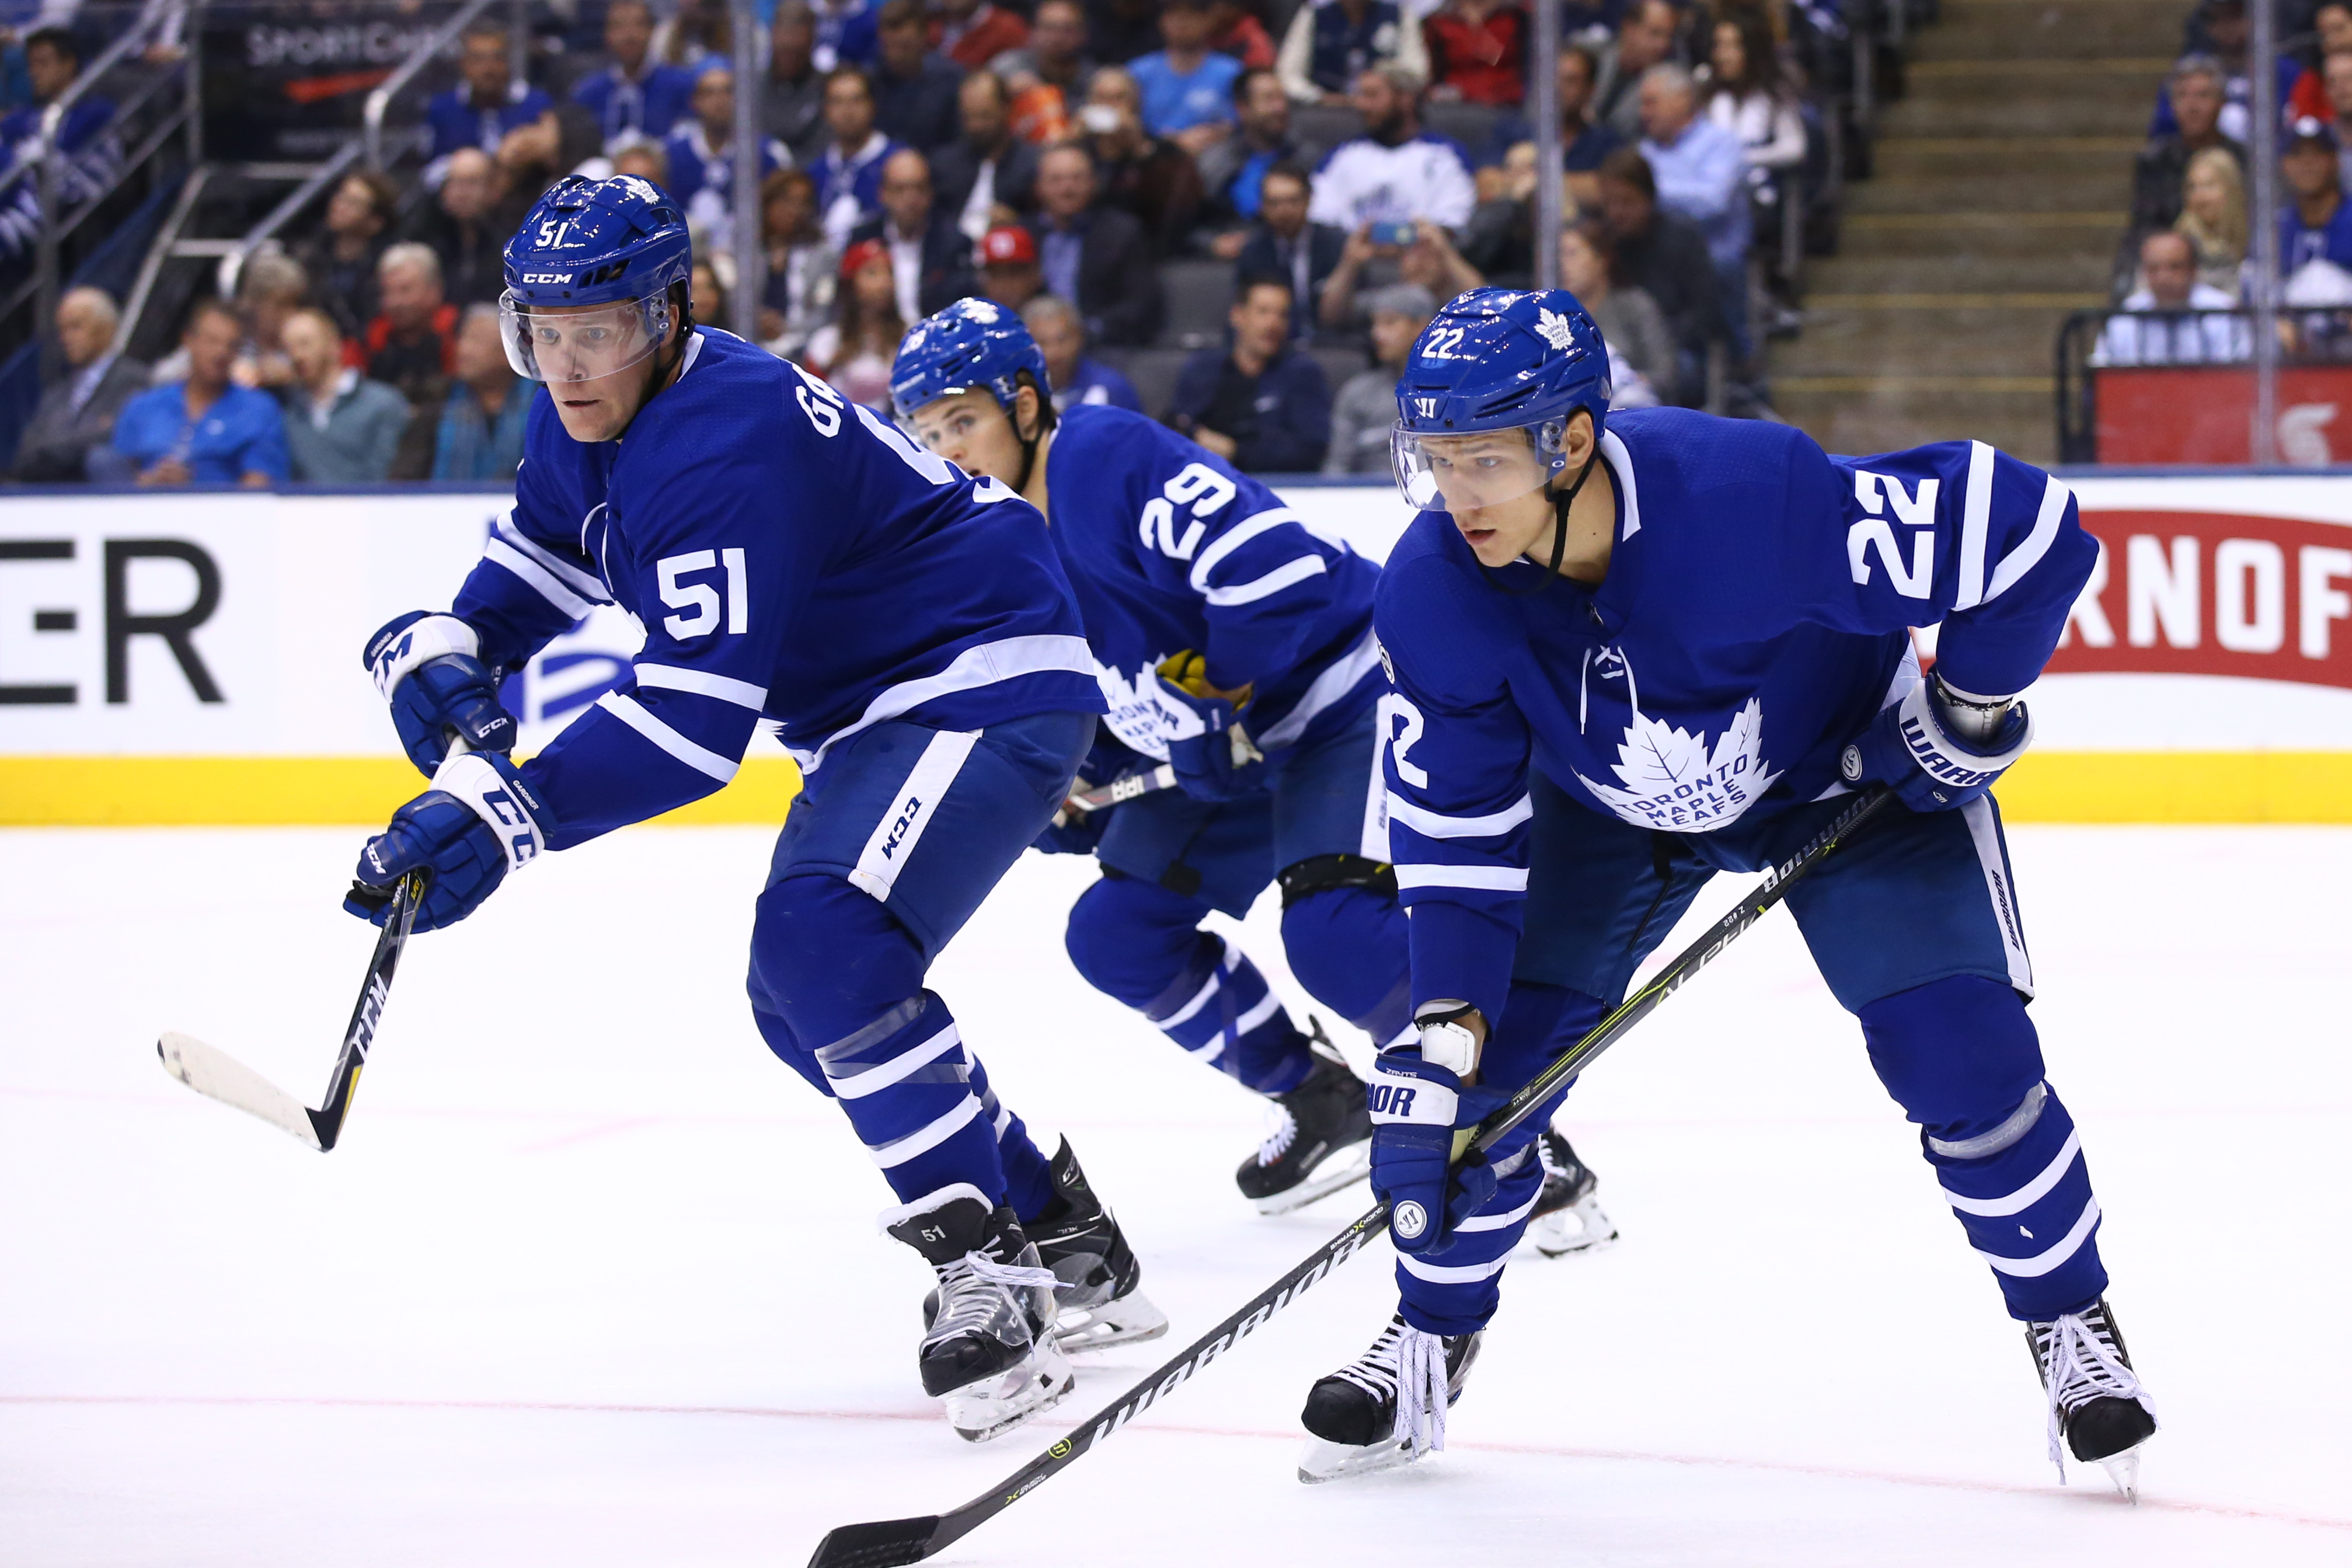 Toronto Maple Leafs: News, Notes, Stuff & Things